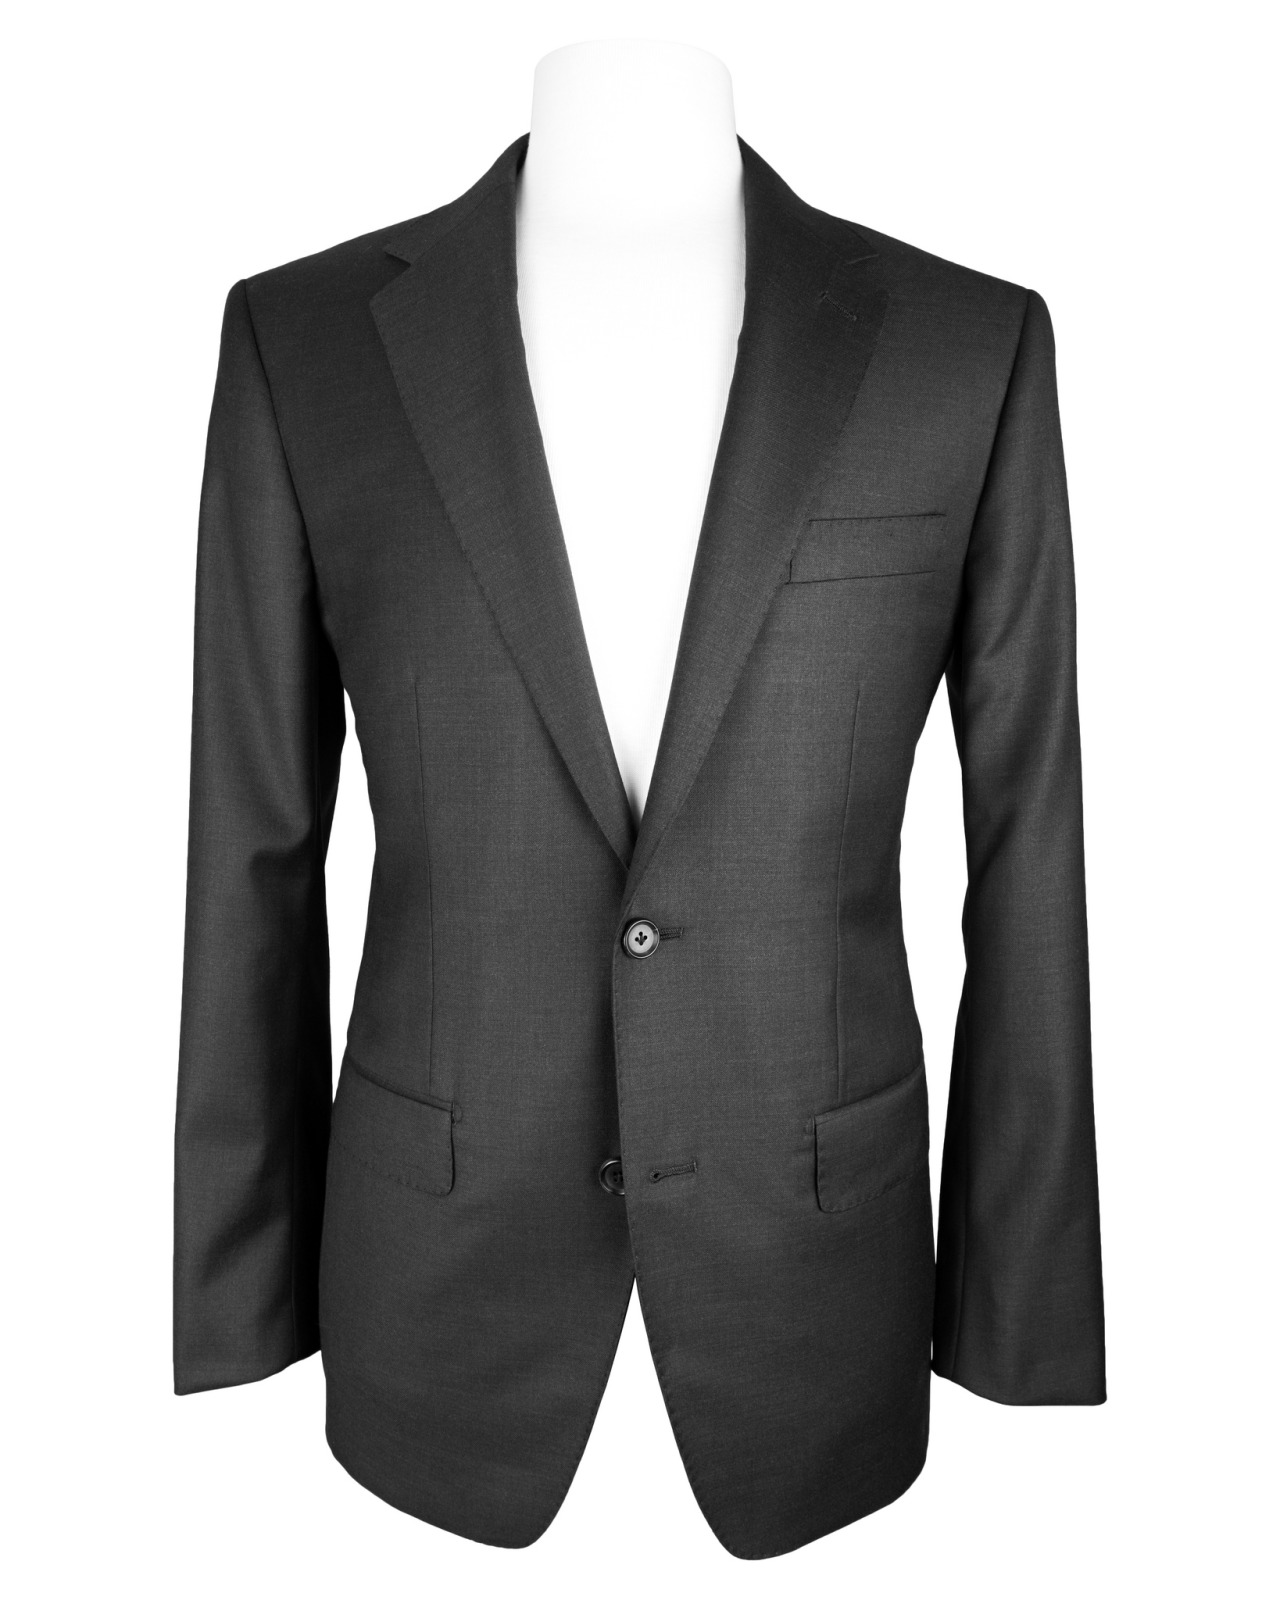 It's On Sale: Kent Wang Charcoal Suits